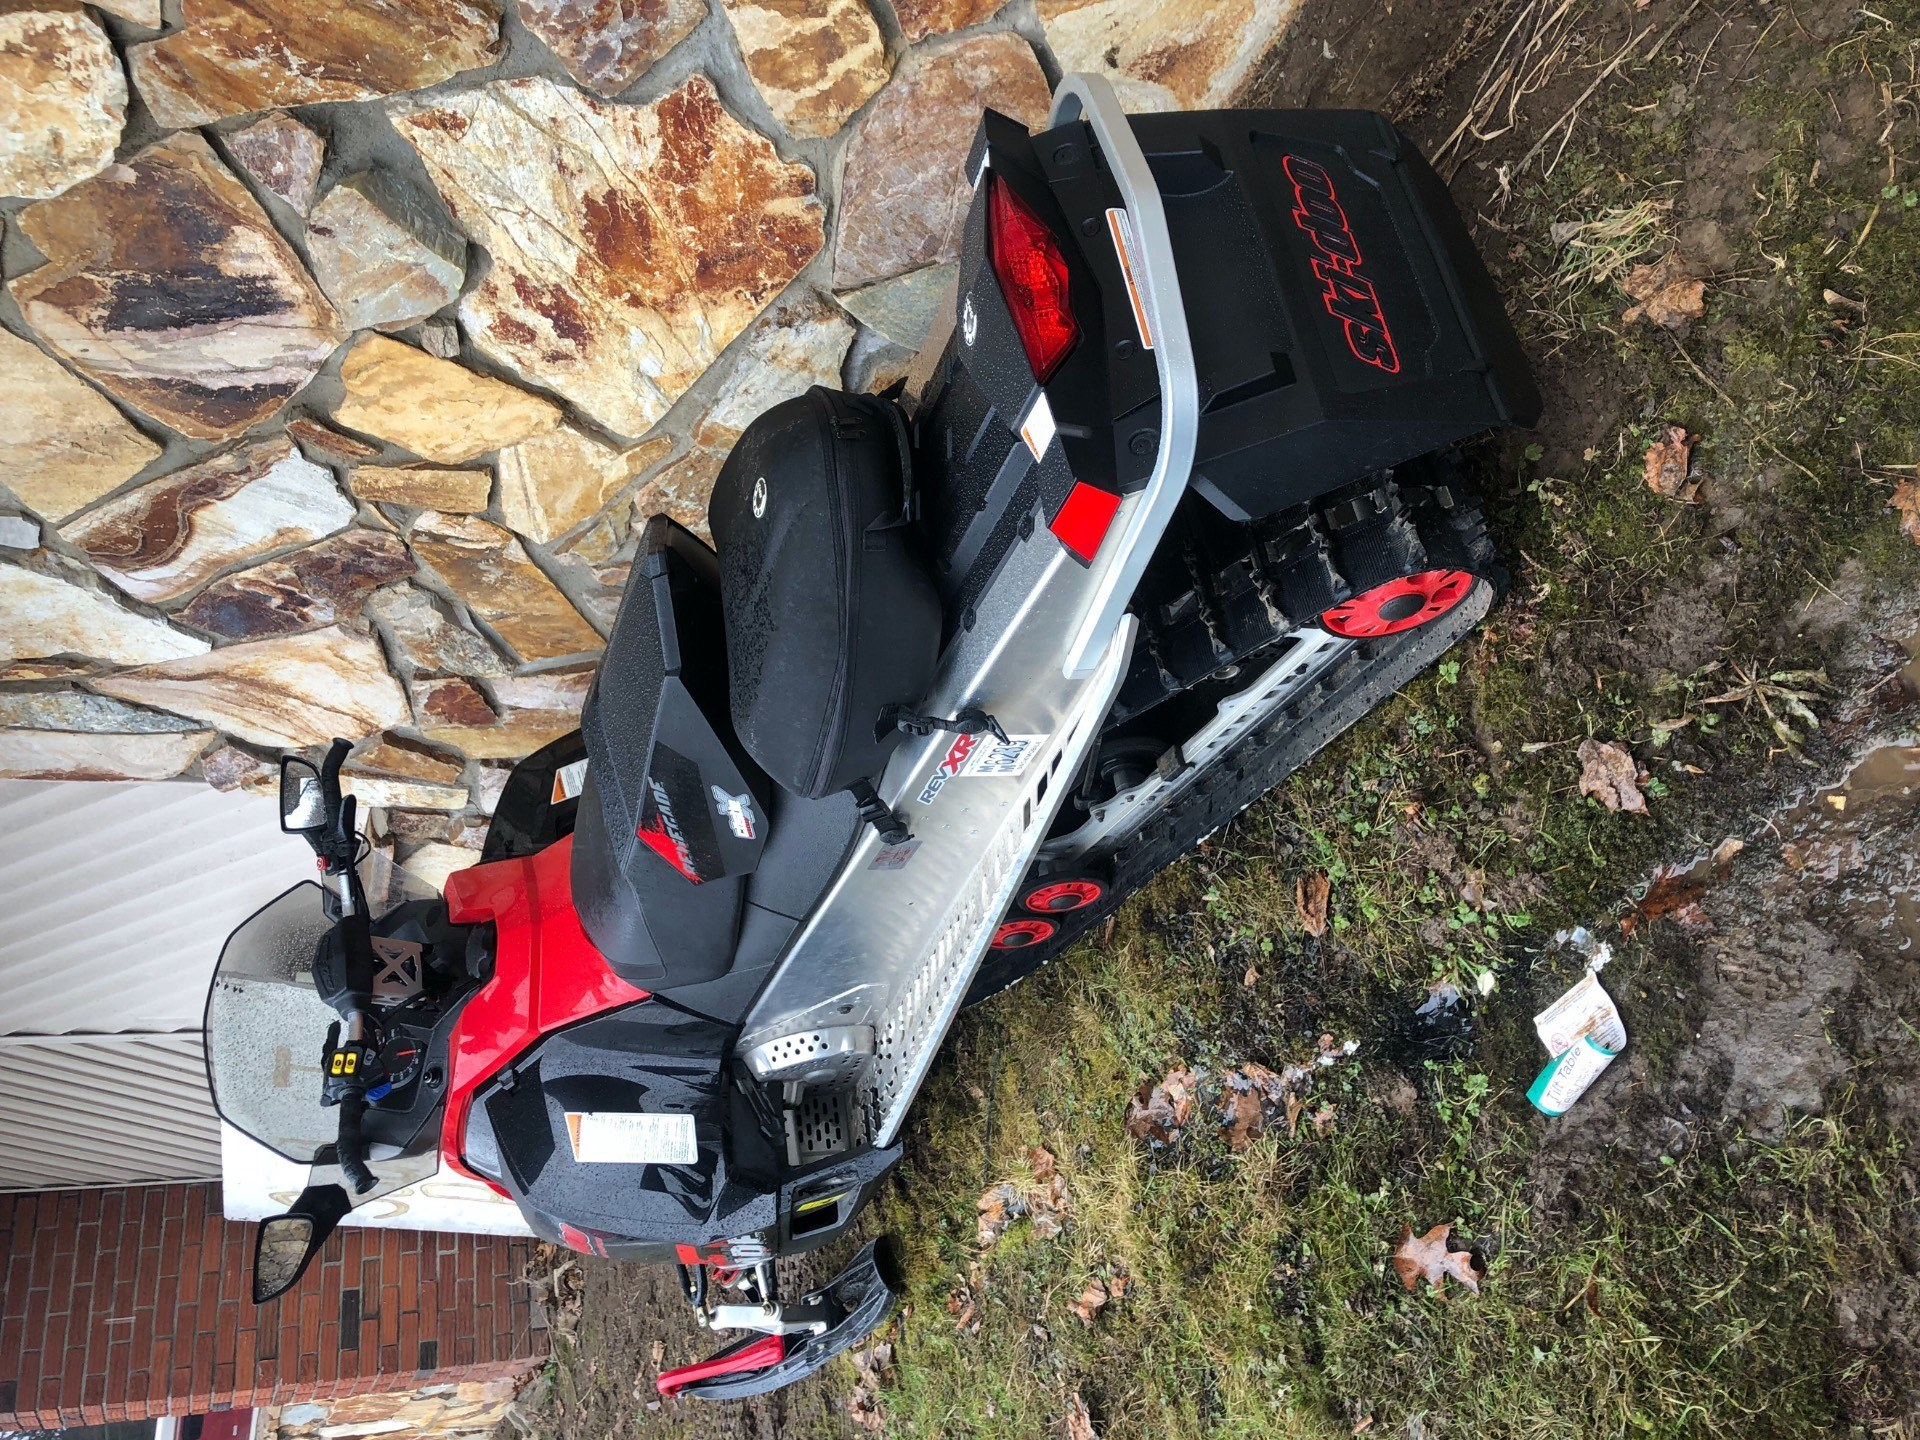 2011 Ski-Doo Renegade® Adrenaline 4-TEC 1200 in Olean, New York - Photo 3